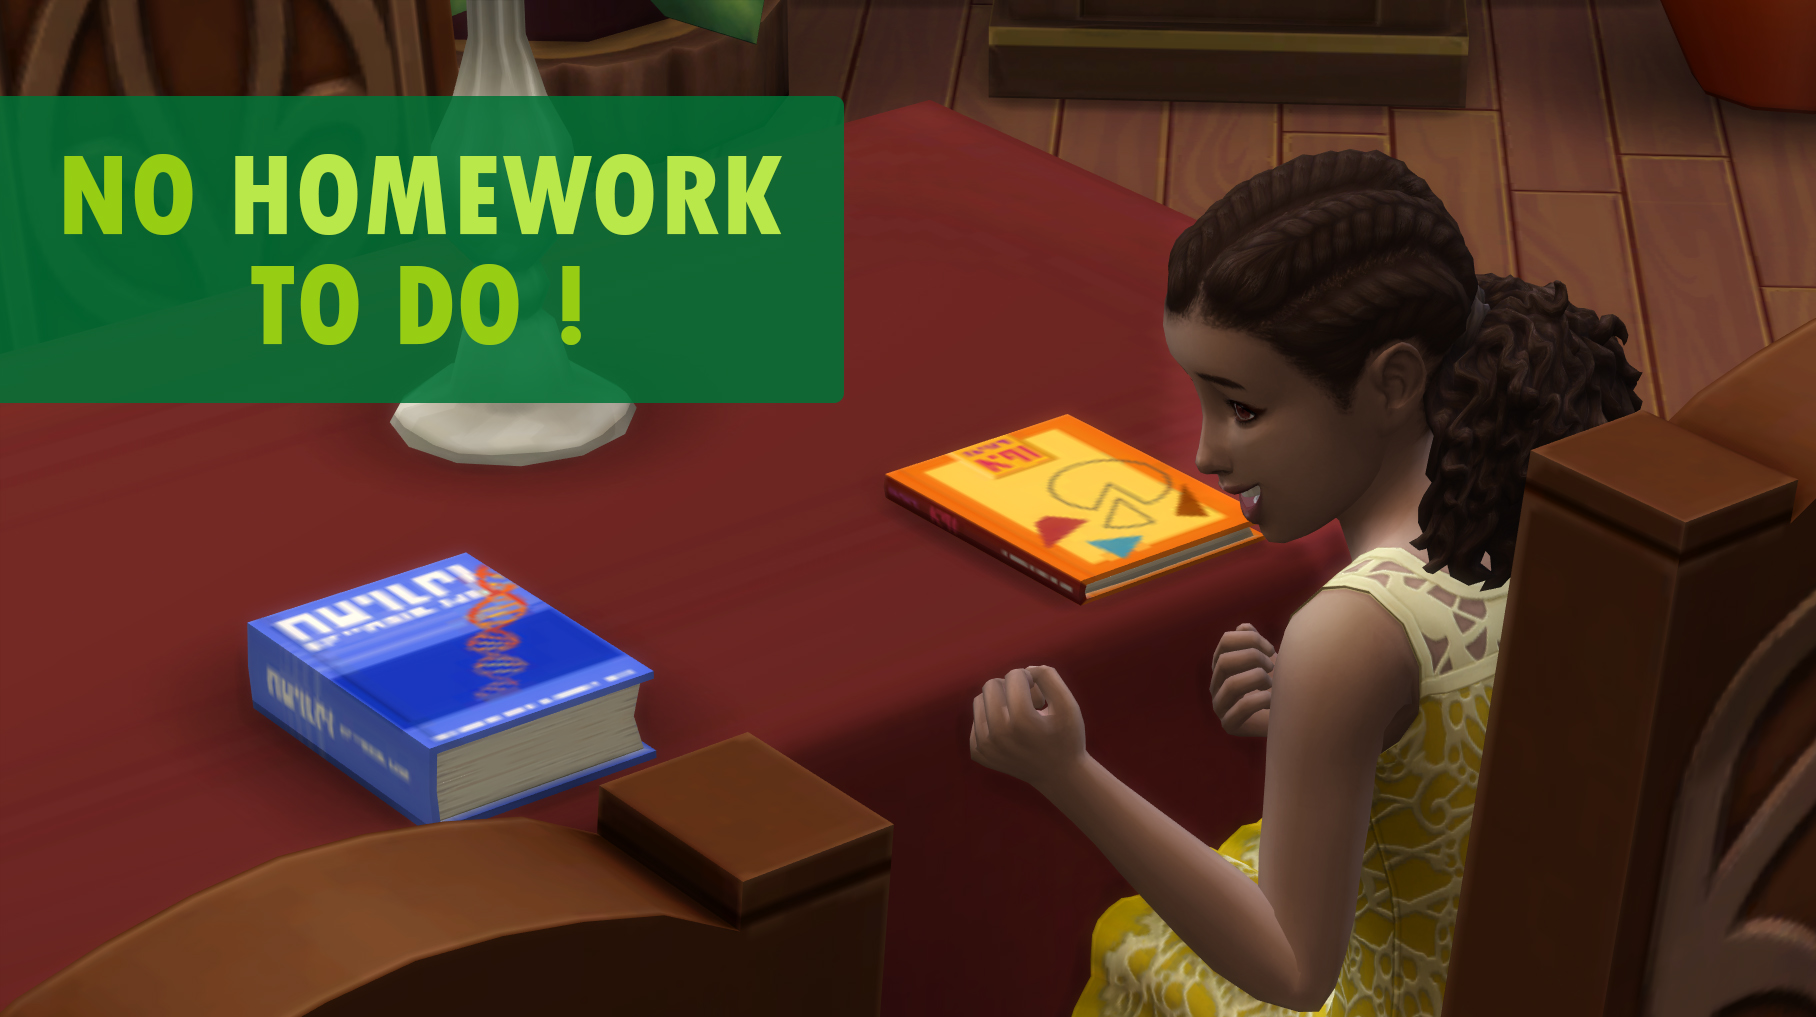 Sims 3 cheat for no homework popular expository essay writers for hire for college